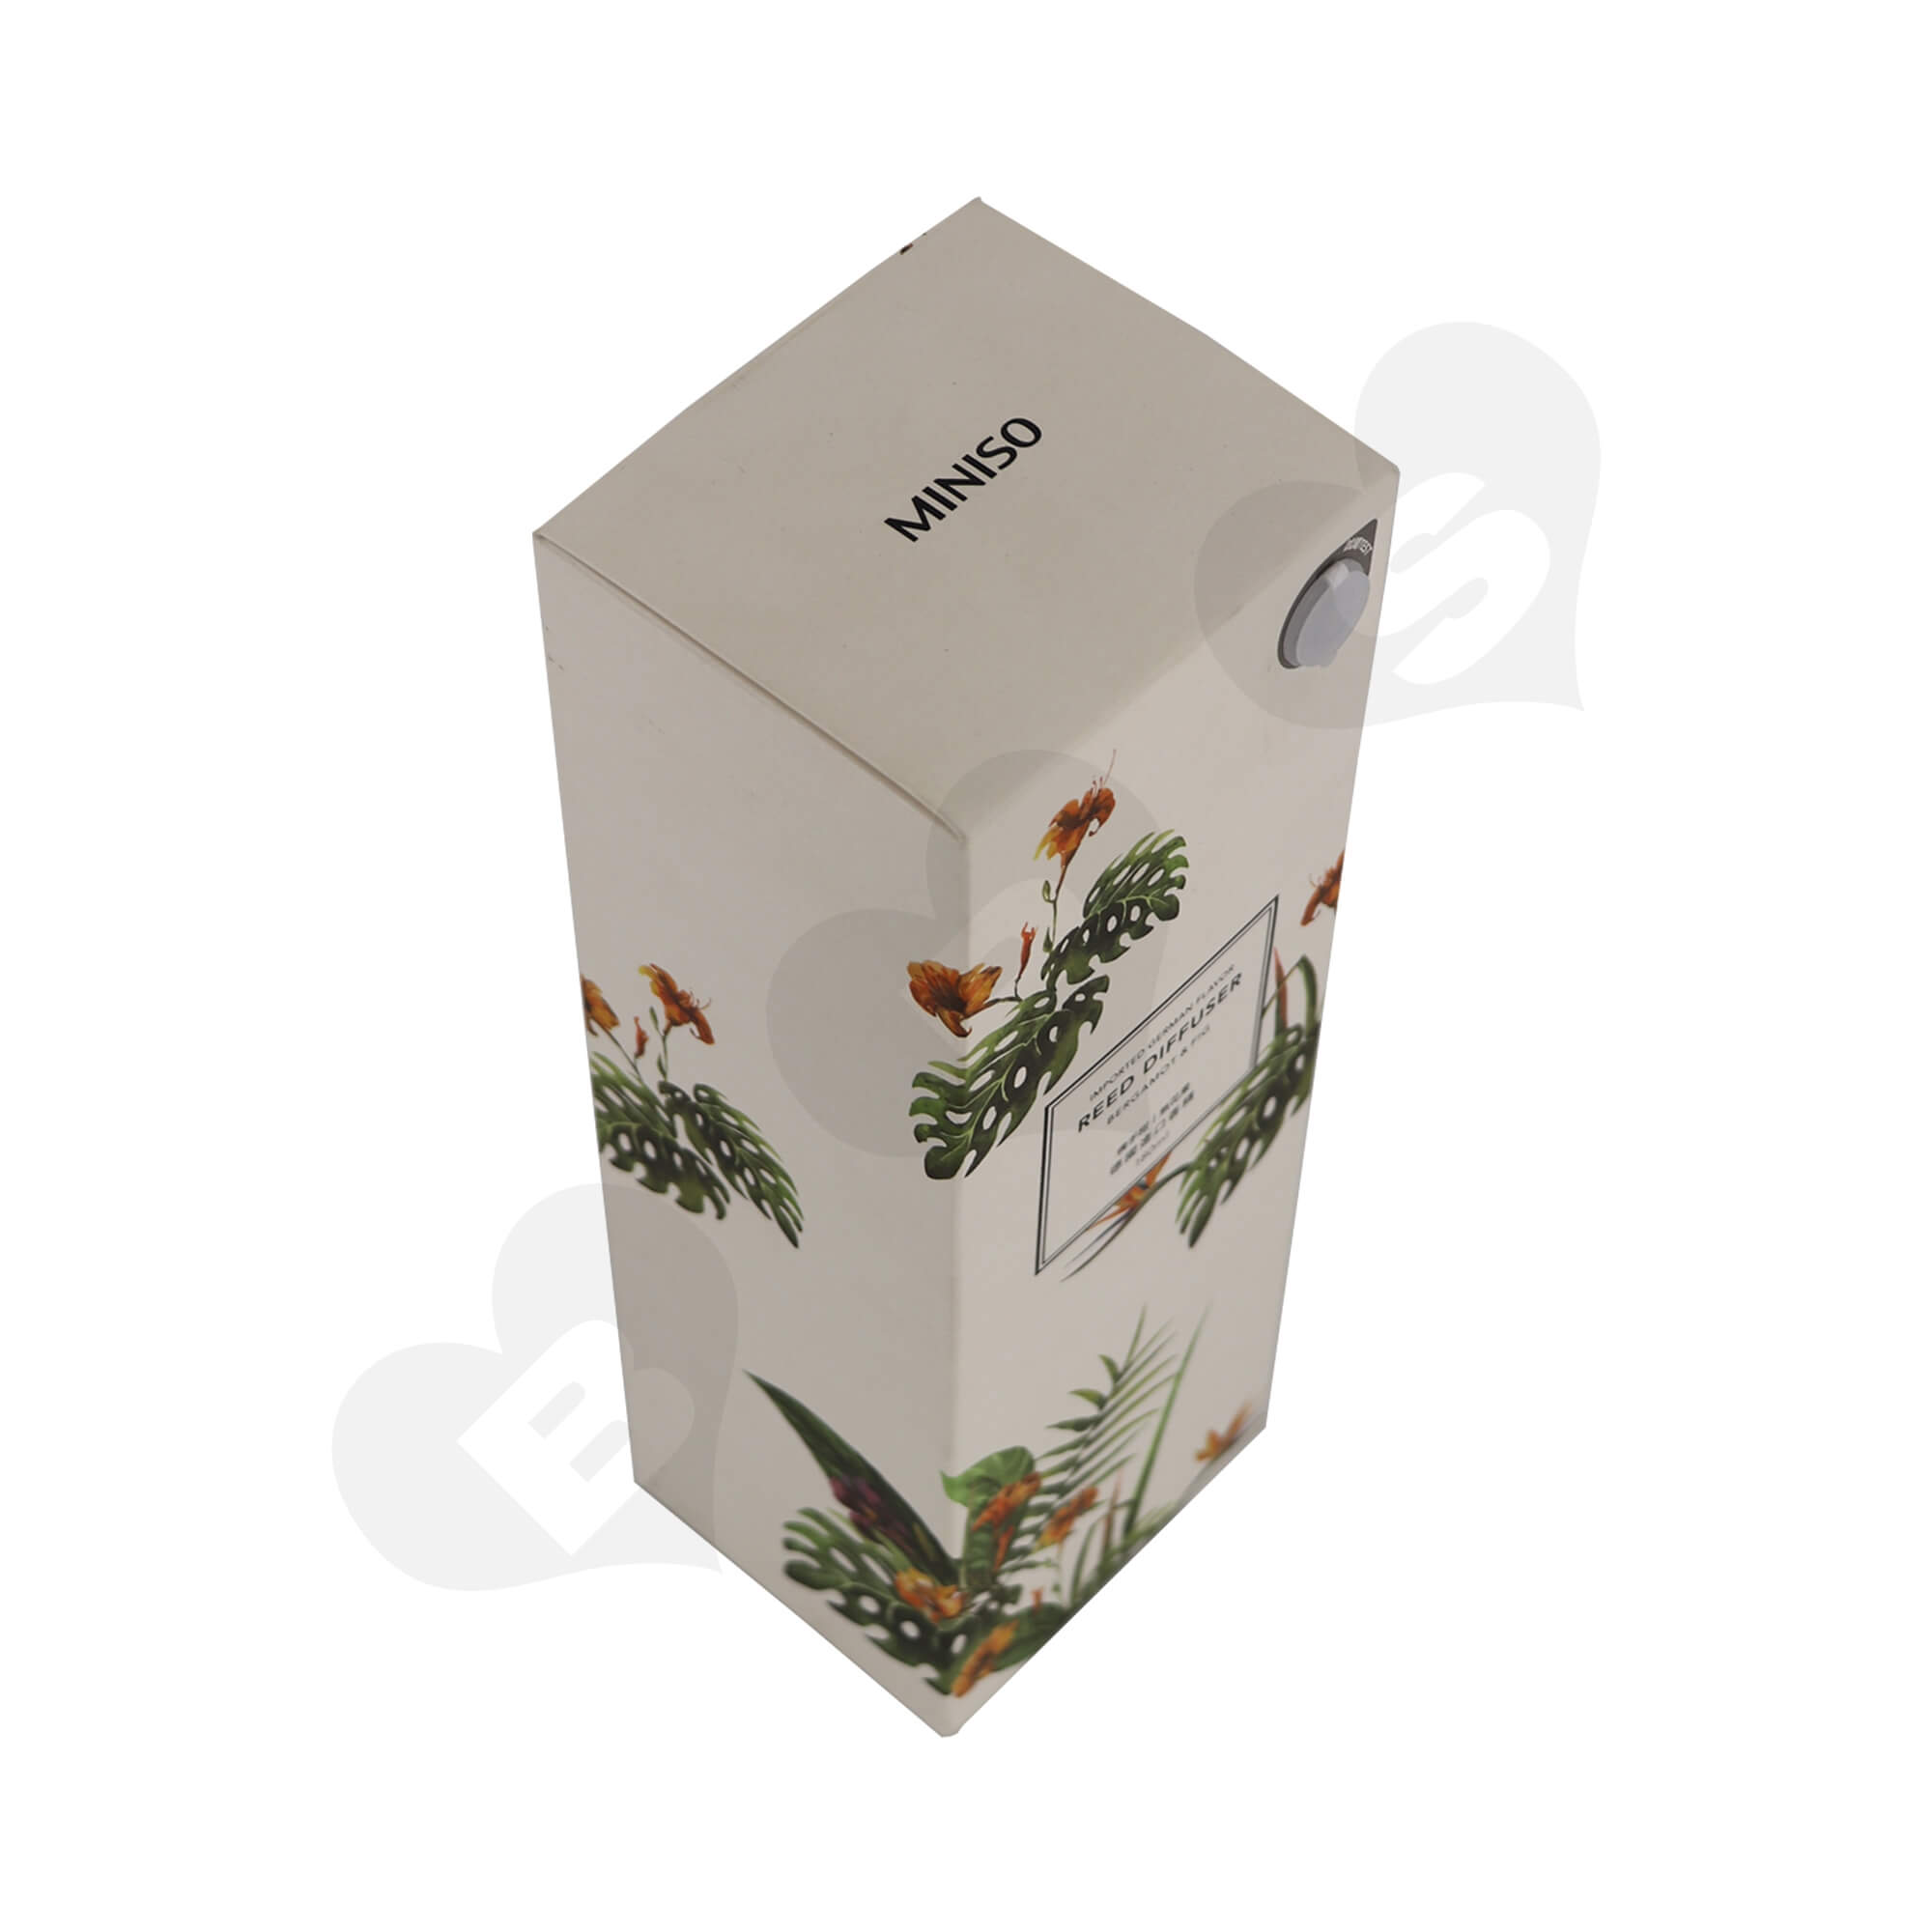 Cardboard Folding Carton For Packing Scent Diffuser With Testing Valve Side View One